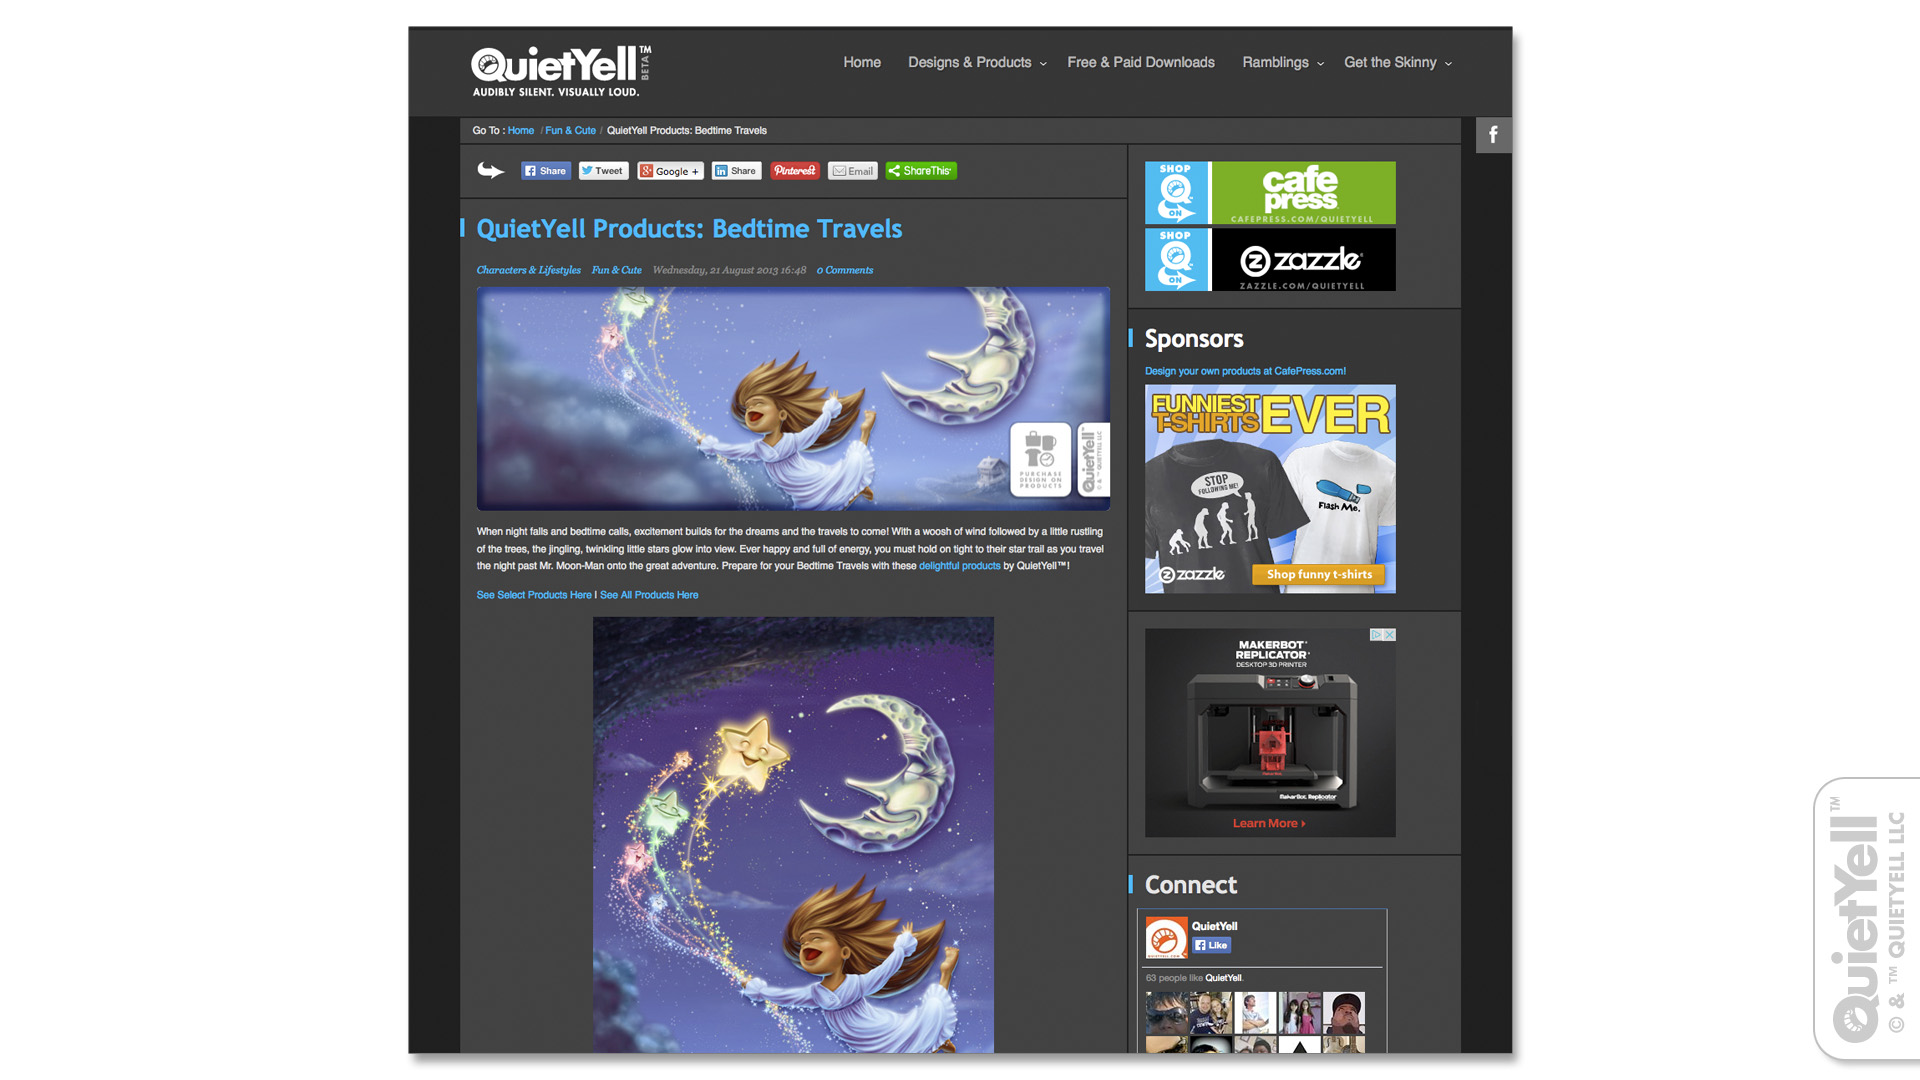 quietyell_interactive_details_quietyell_02